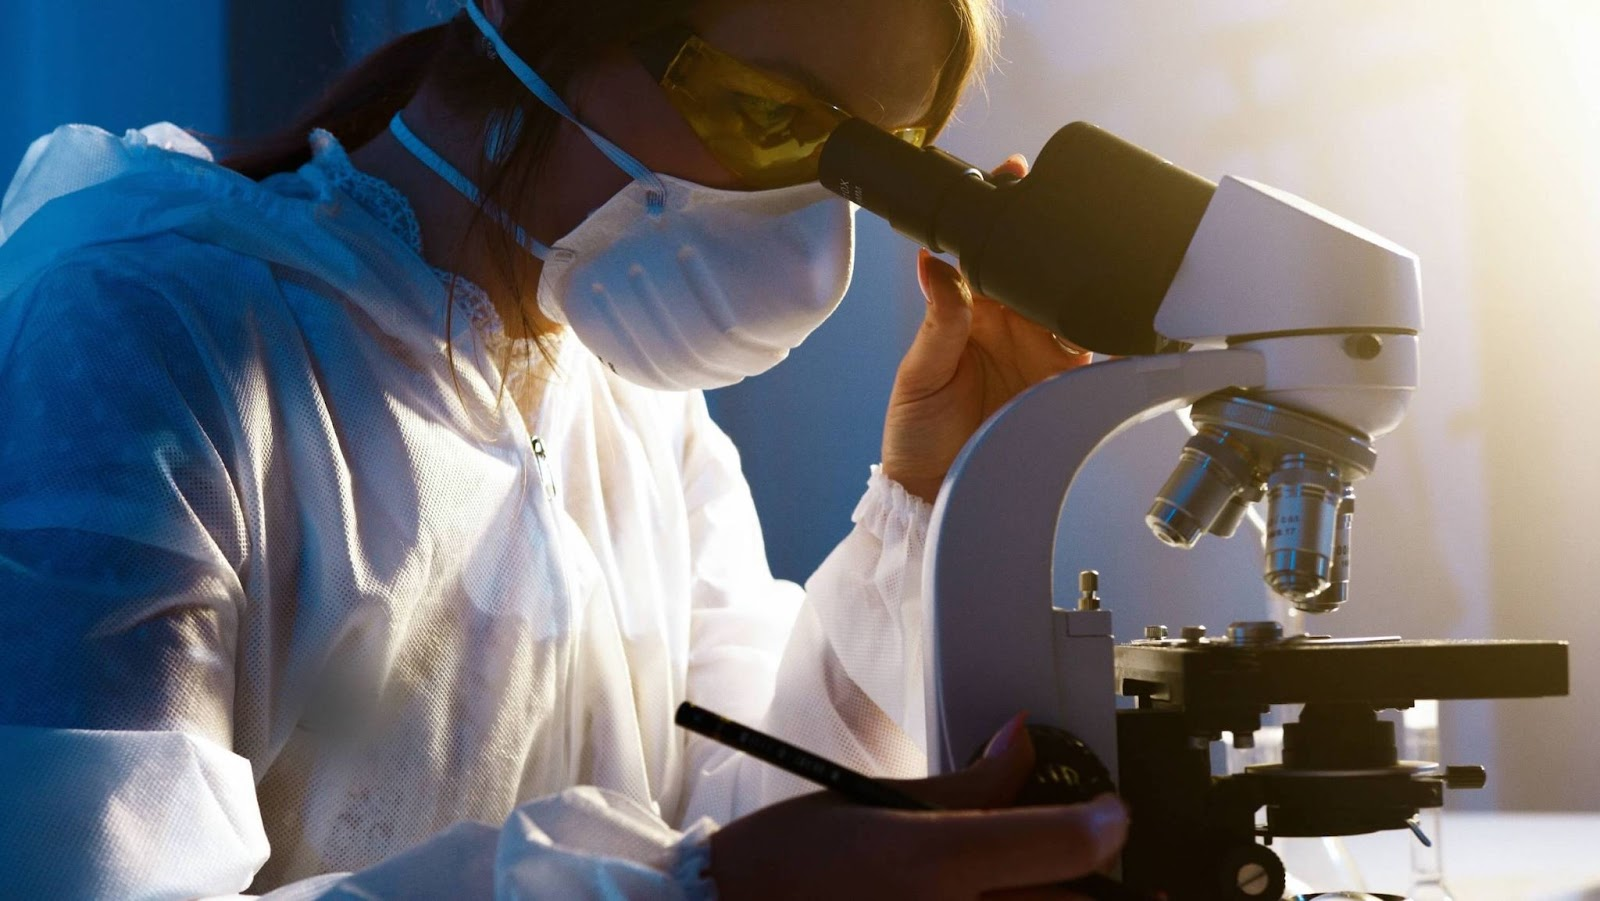 Scientist wearing PPE inspects unidentified object through microscope